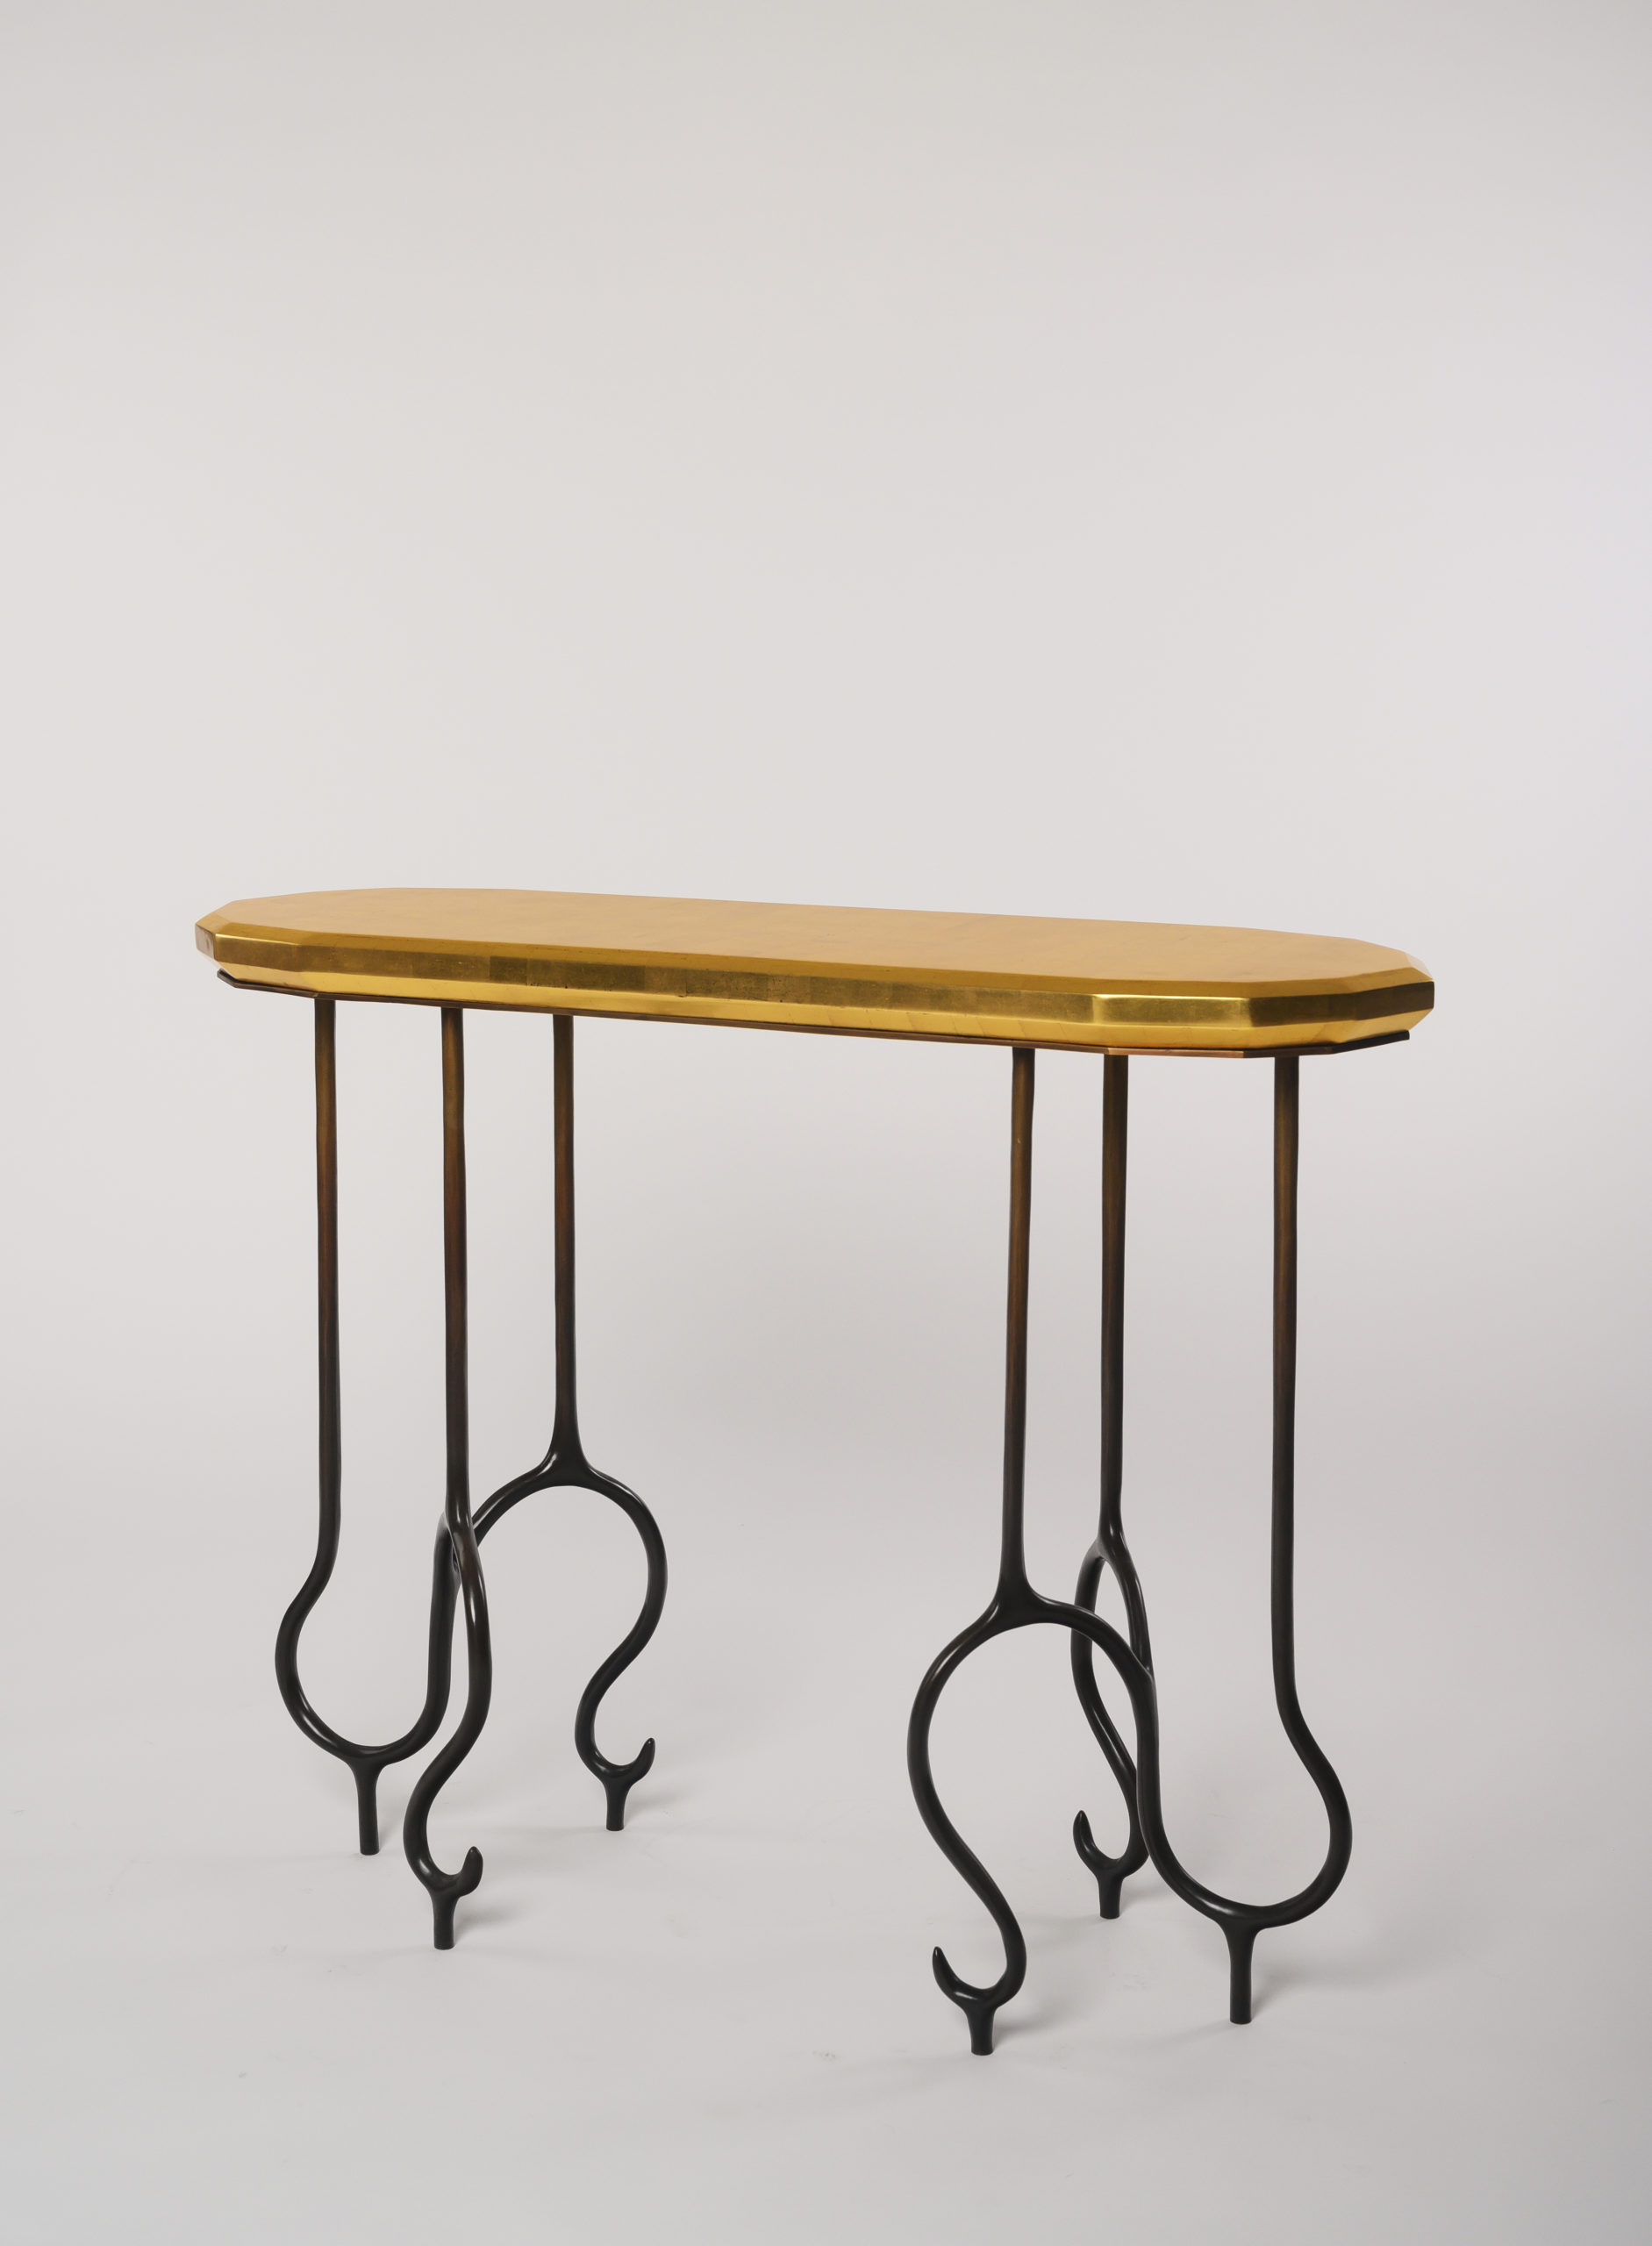 NYDC_WNWN_products_david_sutherland_elan_atelier_Faroh_Console_BEE_5107